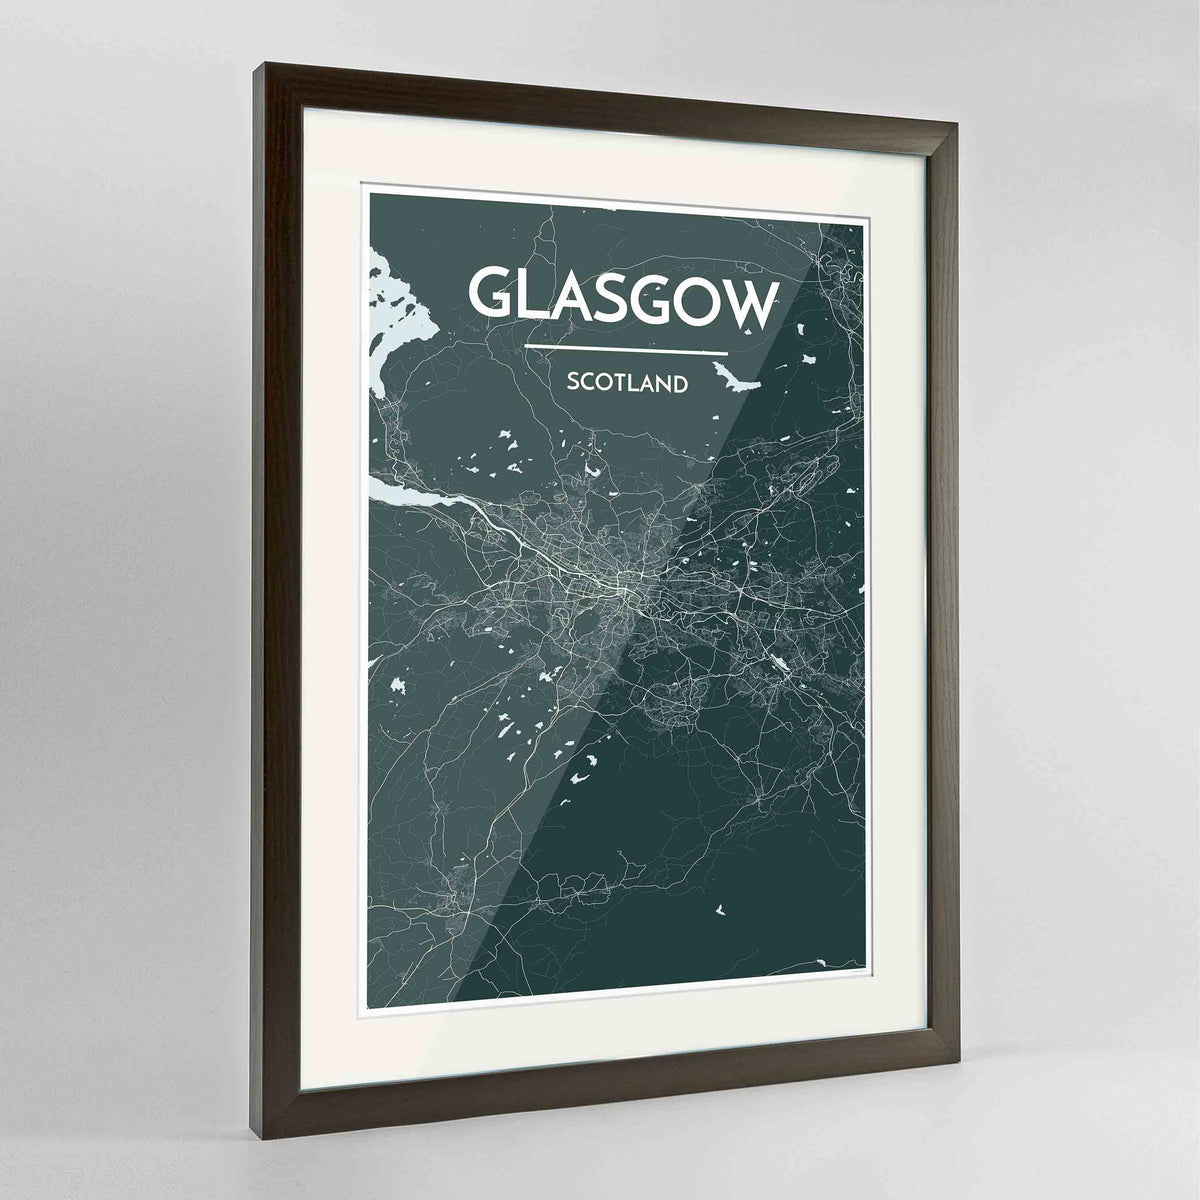 "Framed Glasgow Map Art Print 24x36"" Contemporary Walnut frame Point Two Design Group"